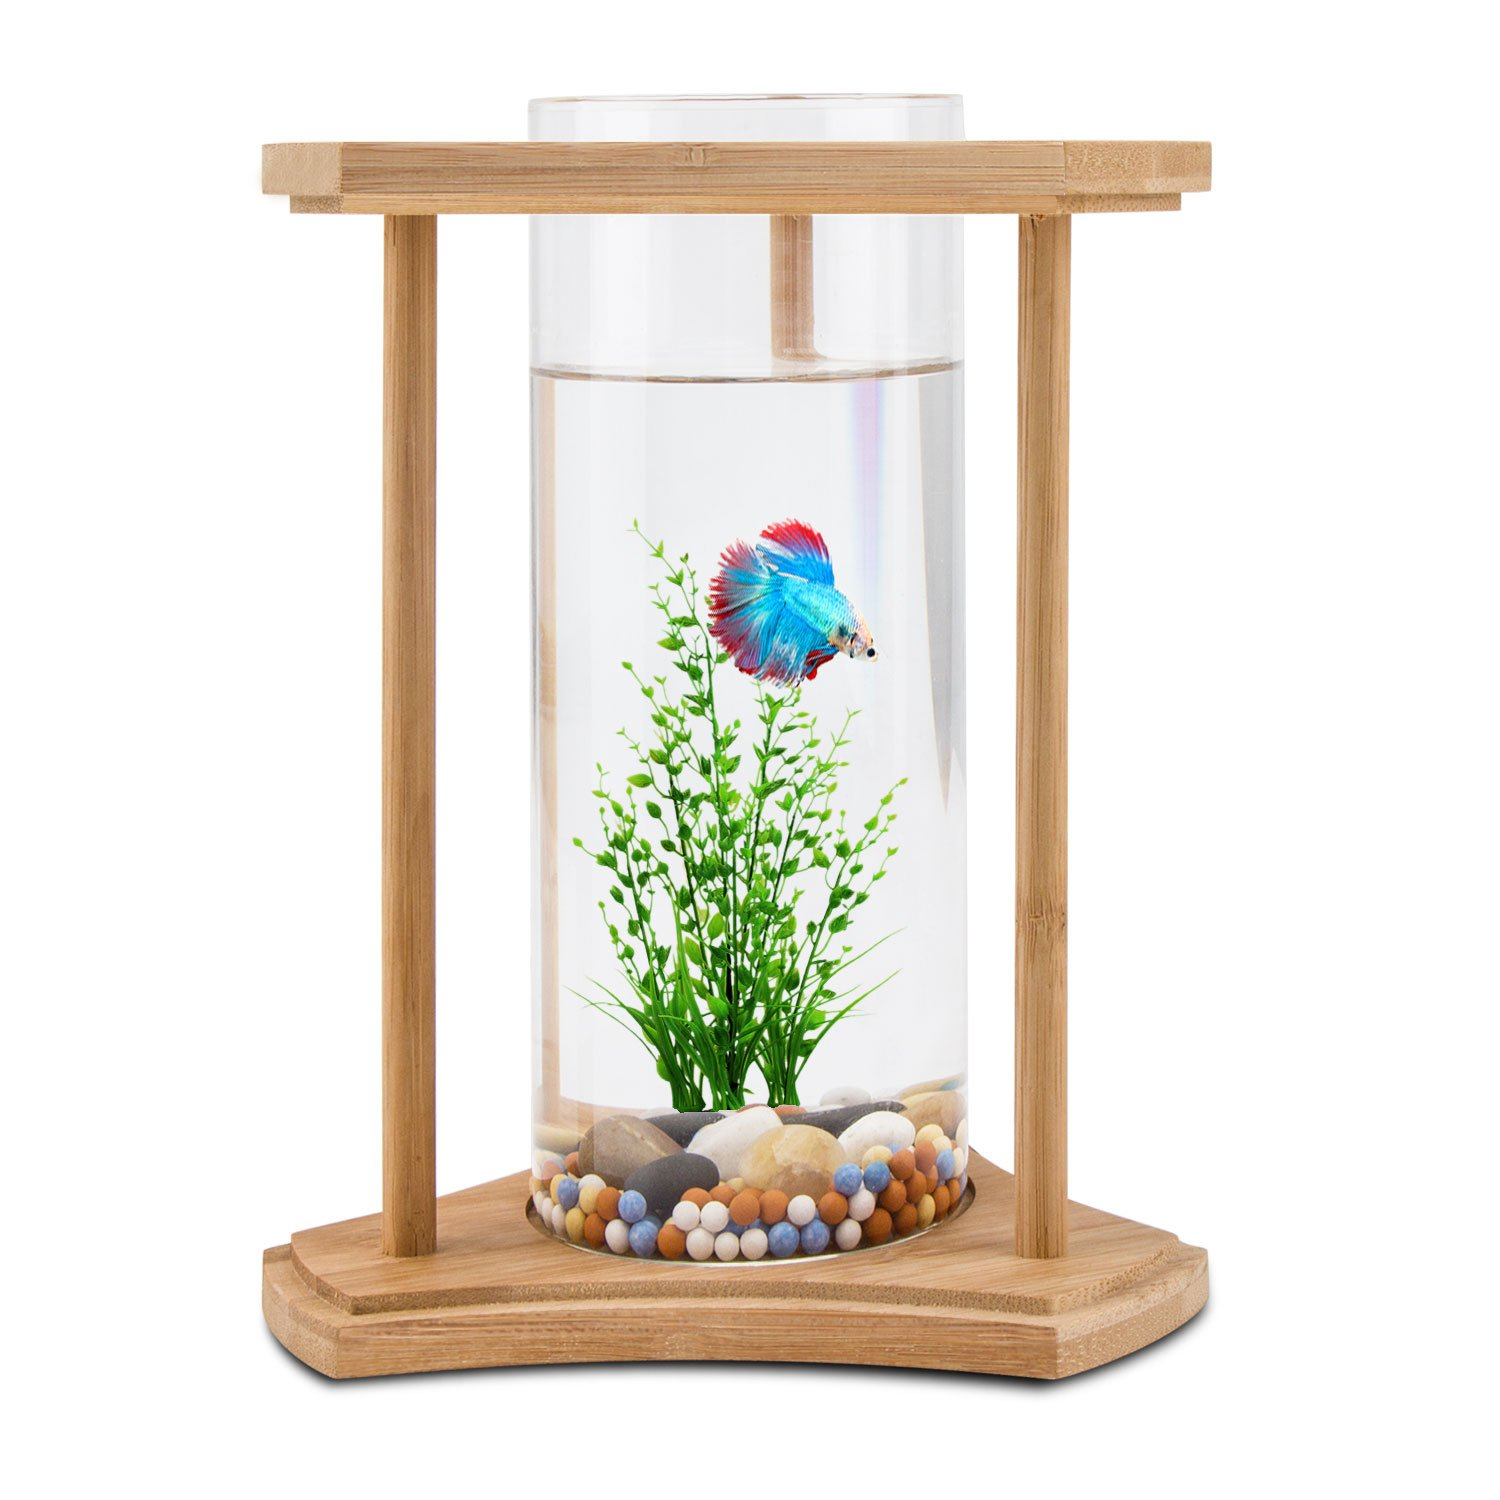 Amazon.com: Segarty Desktop Fish Tank Bamboo - Unique Design Small ...